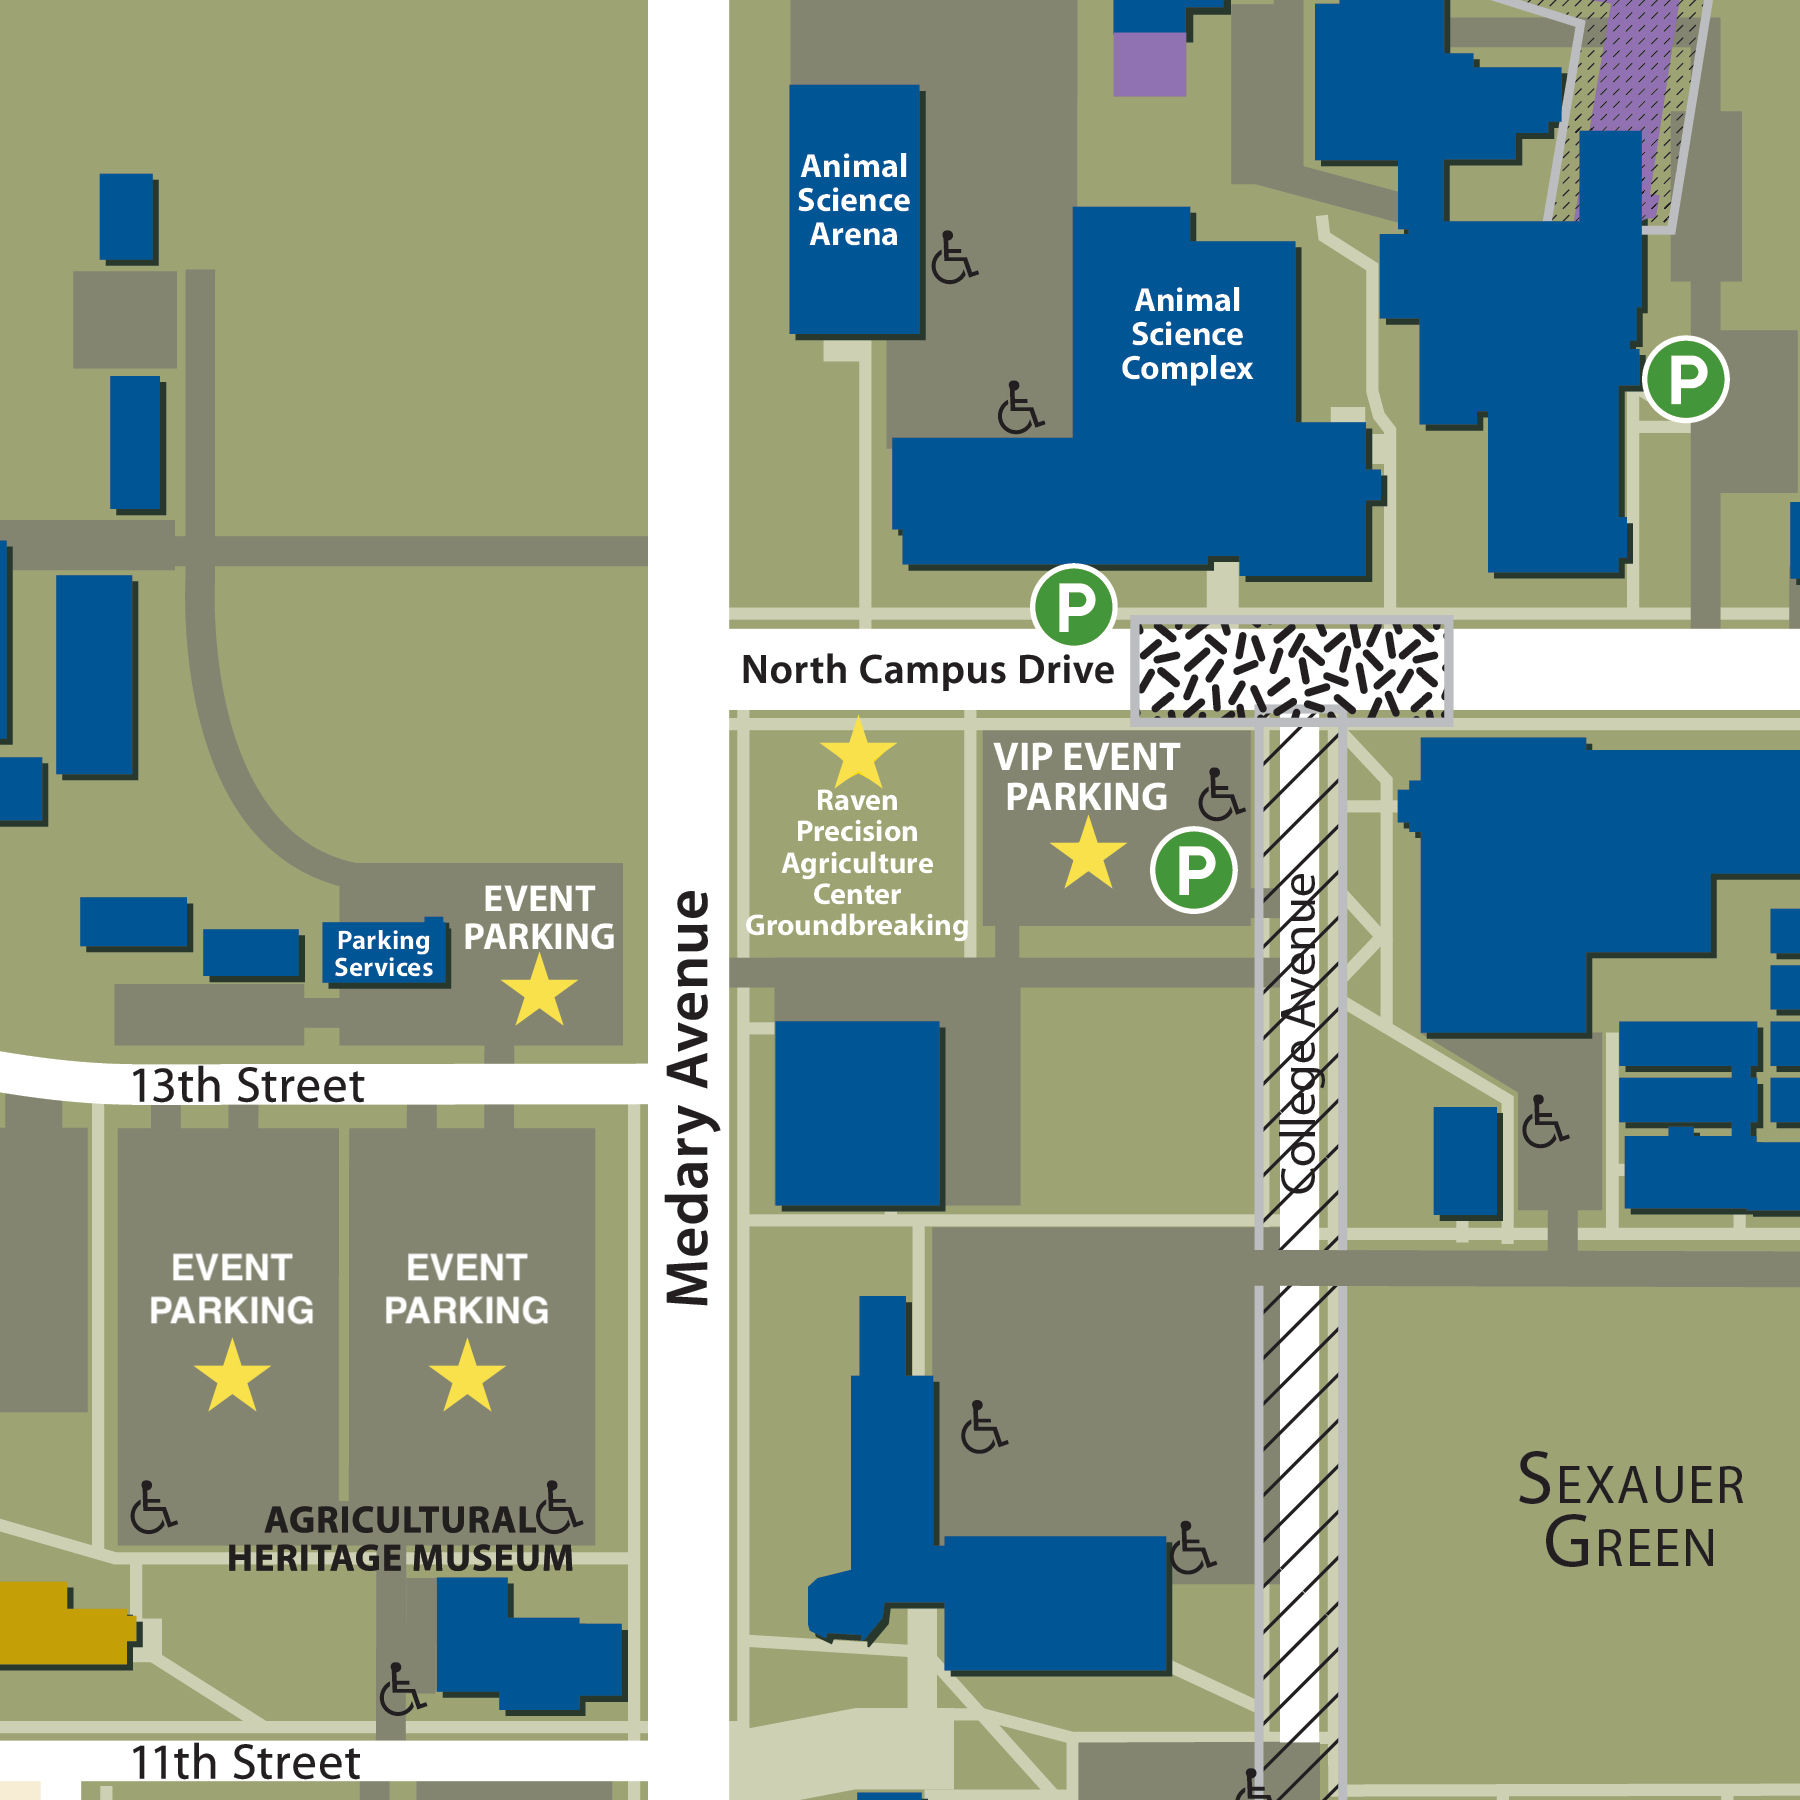 Parking map for the groundbreaking